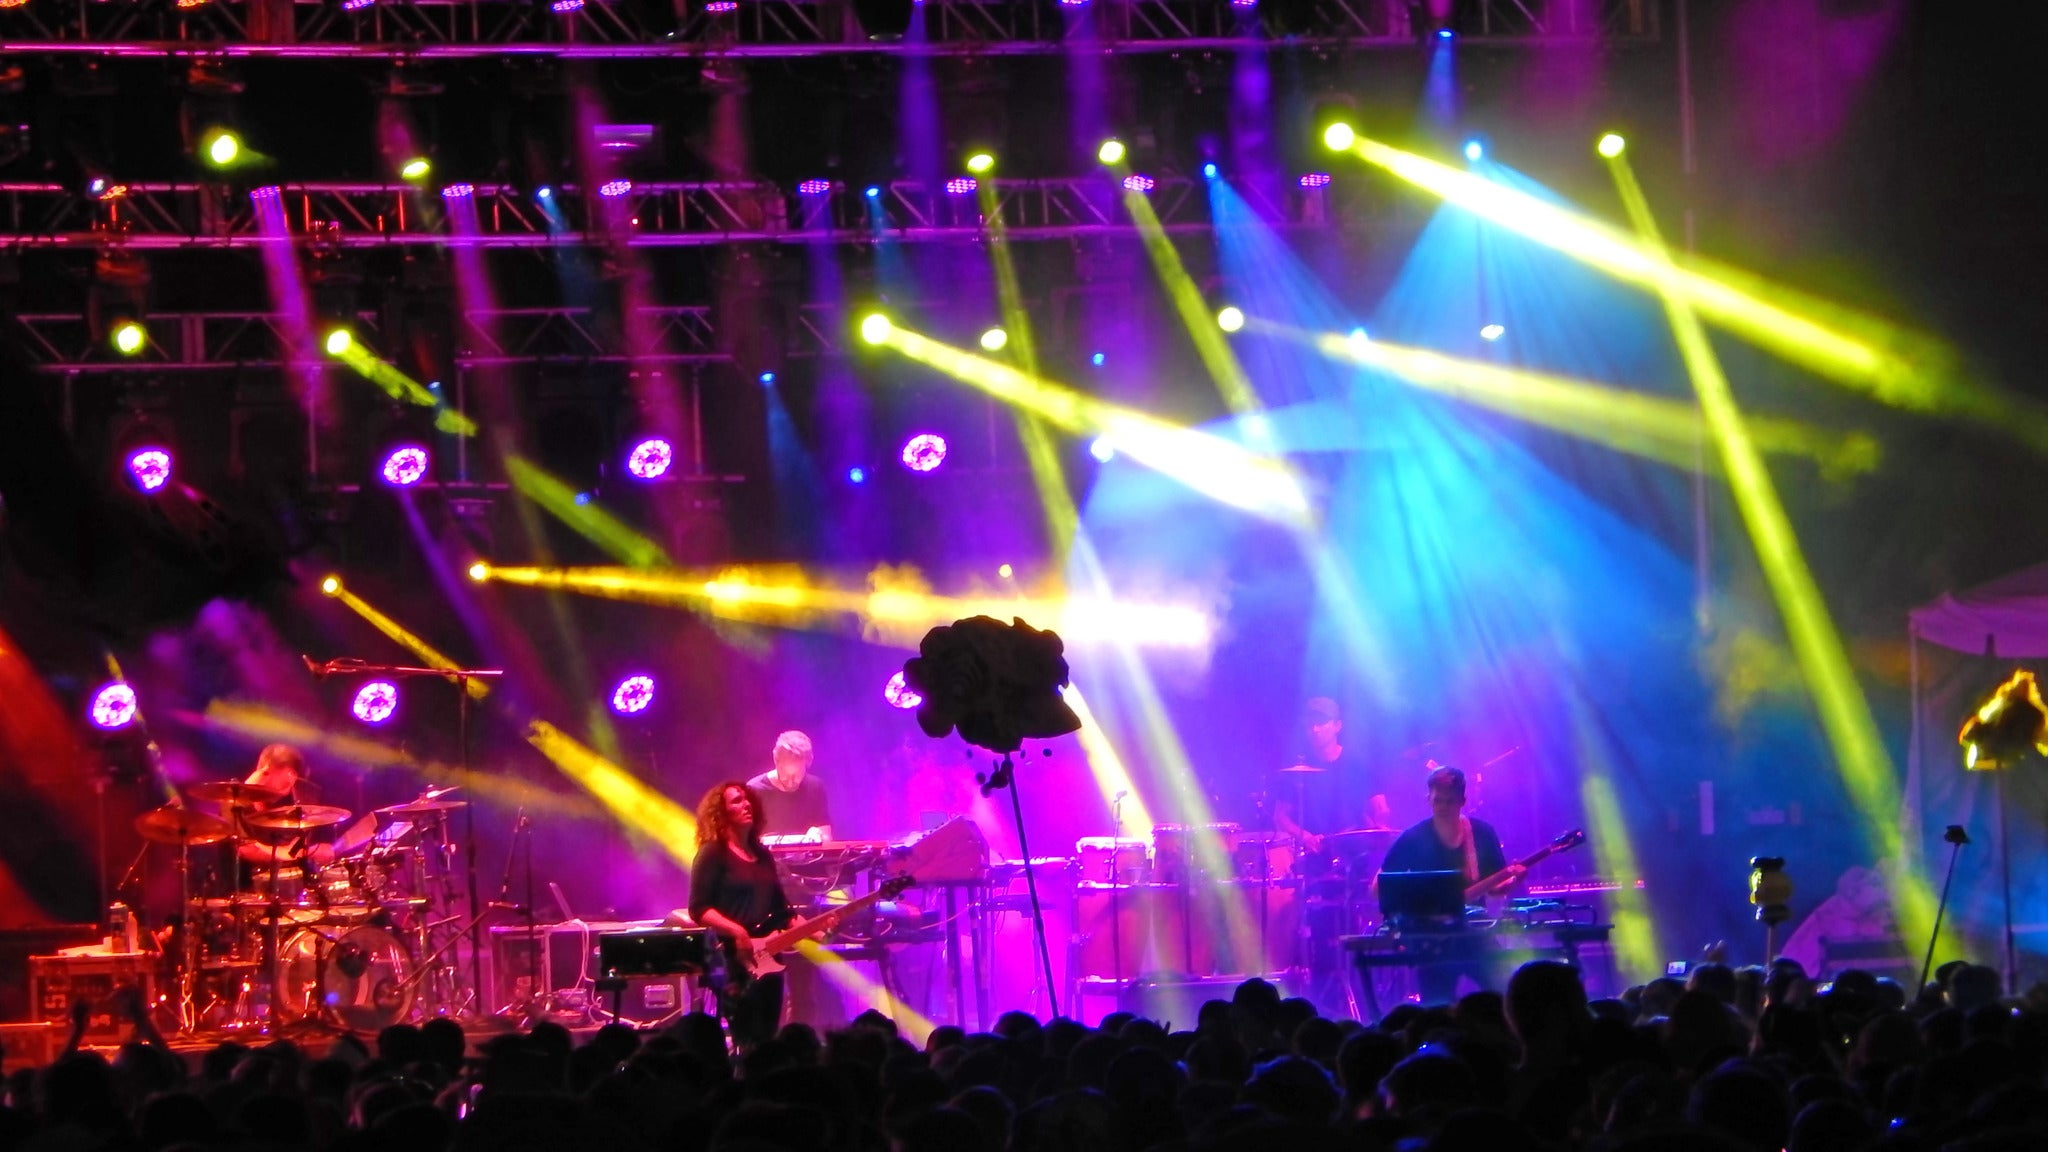 STS9 at Coca-Cola Roxy - Atlanta, GA 30339